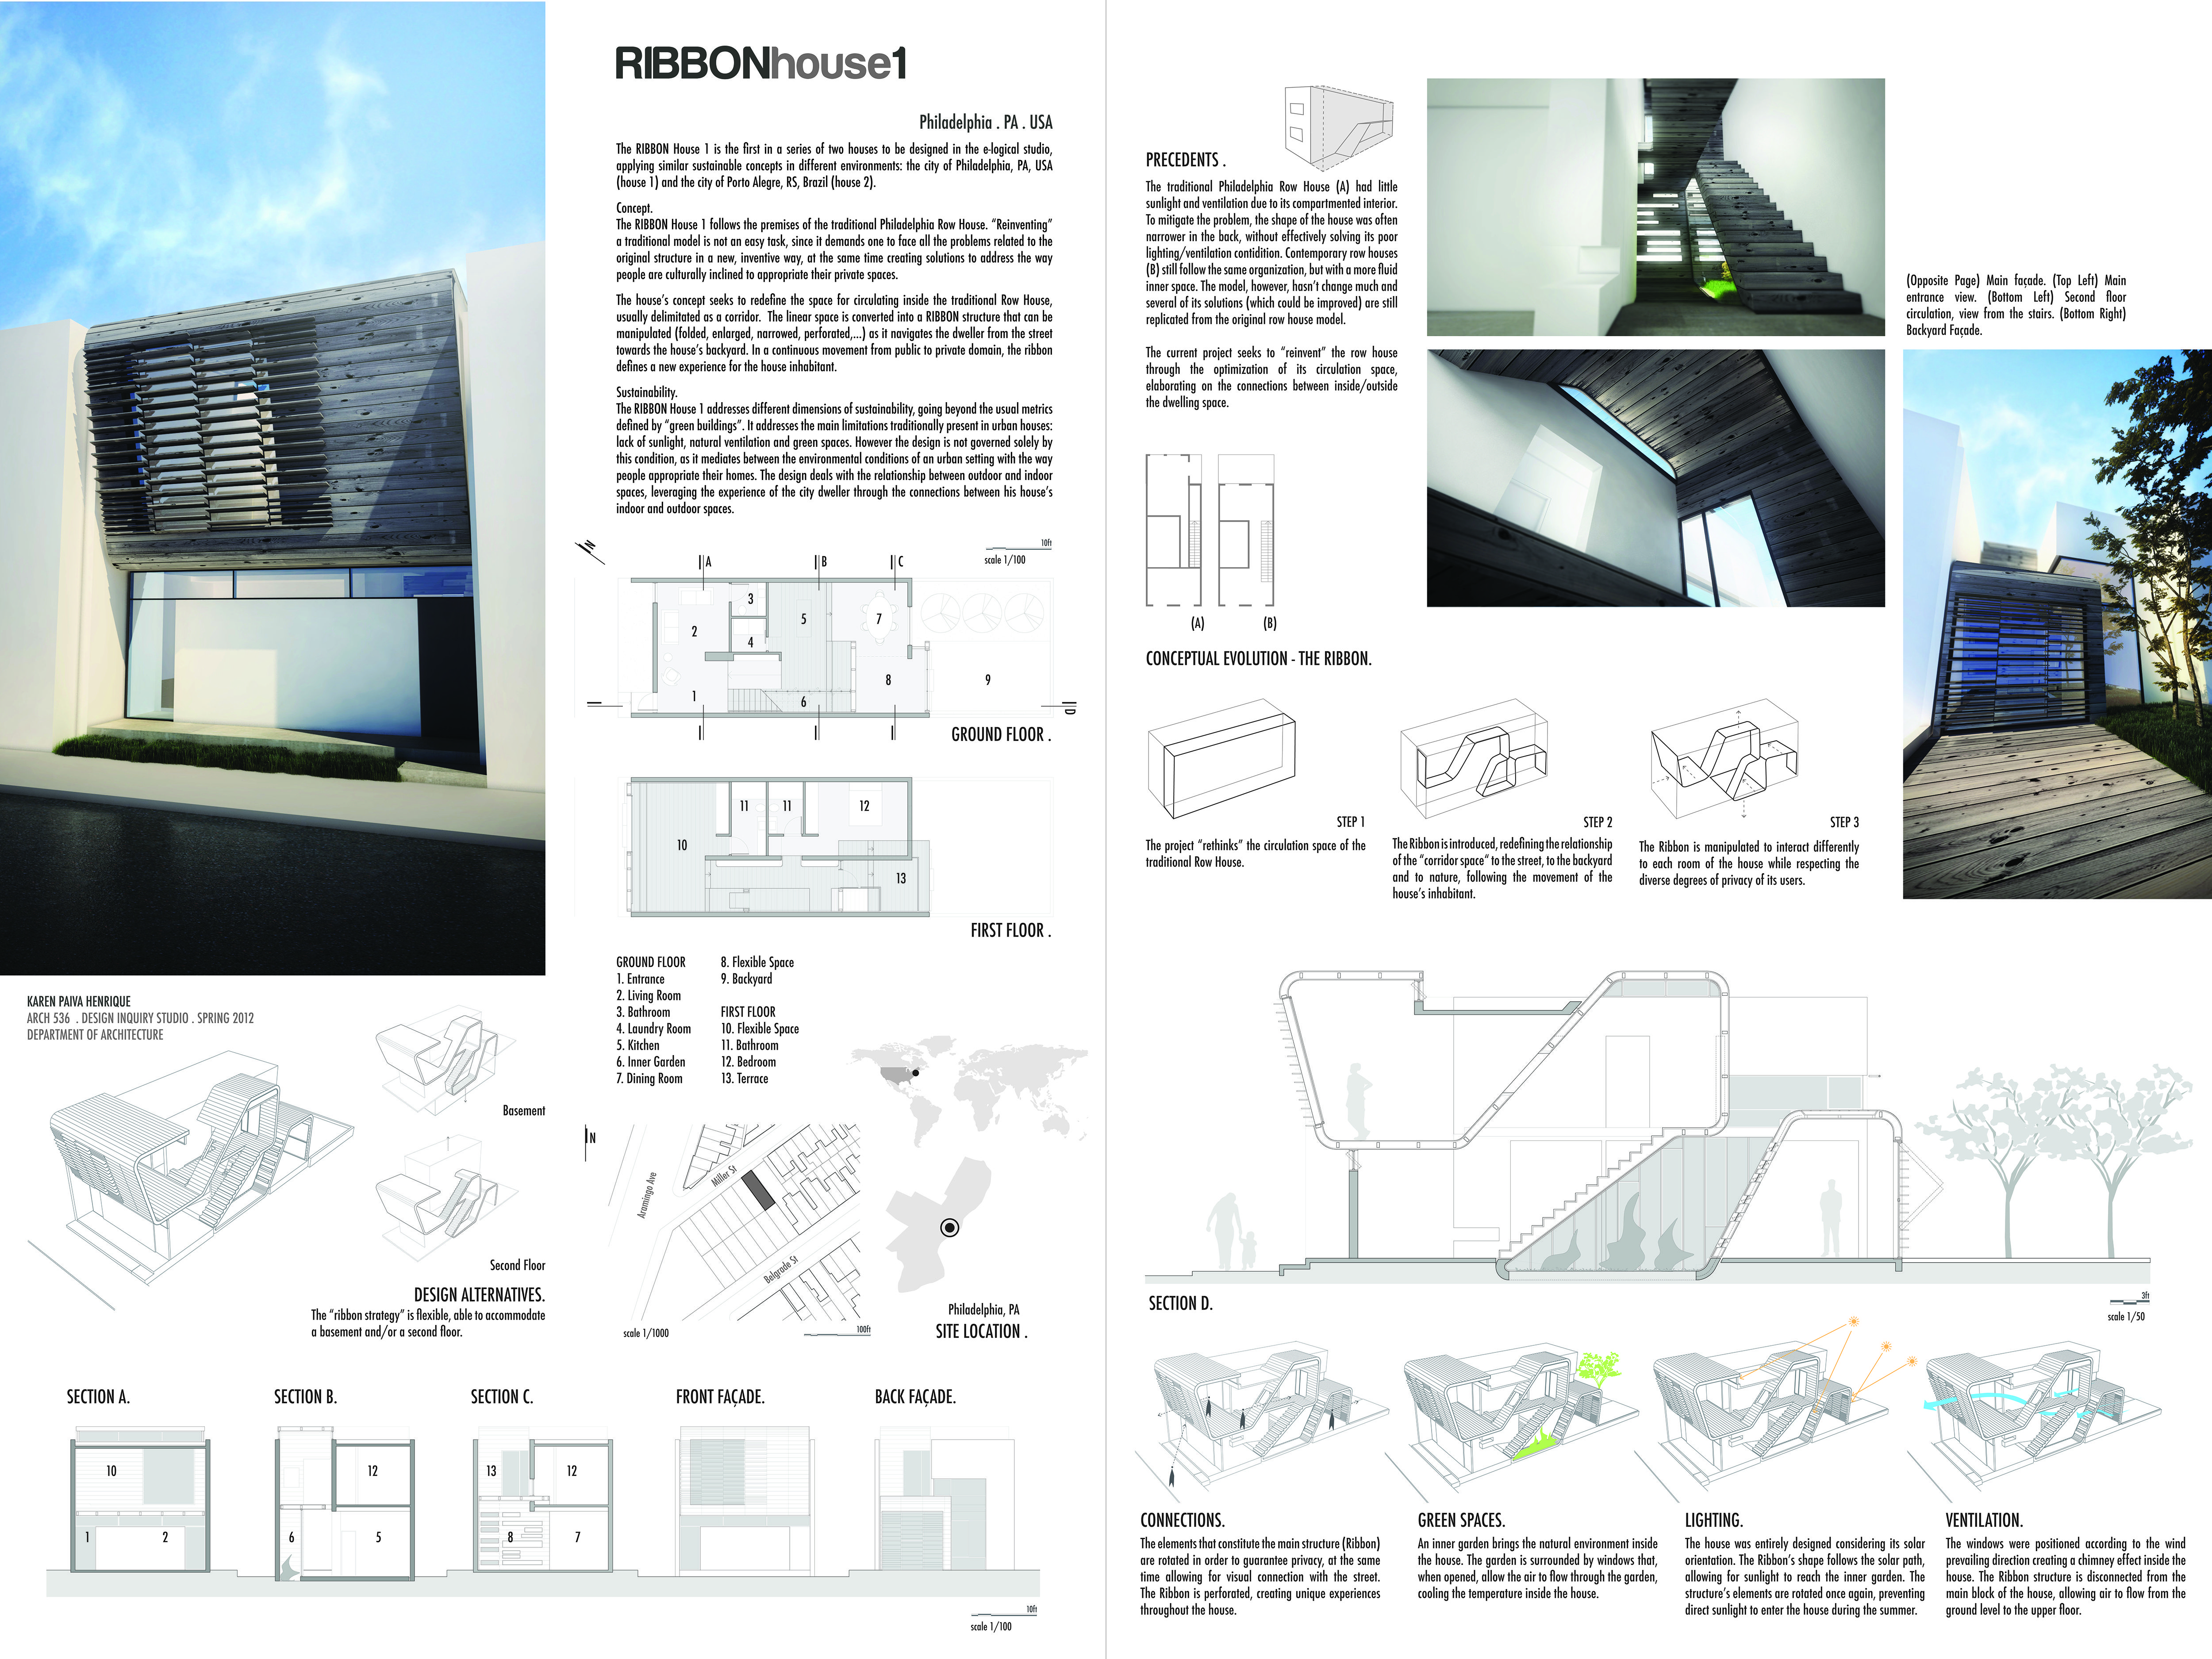 architectural board showing drawings for the ribbon house i